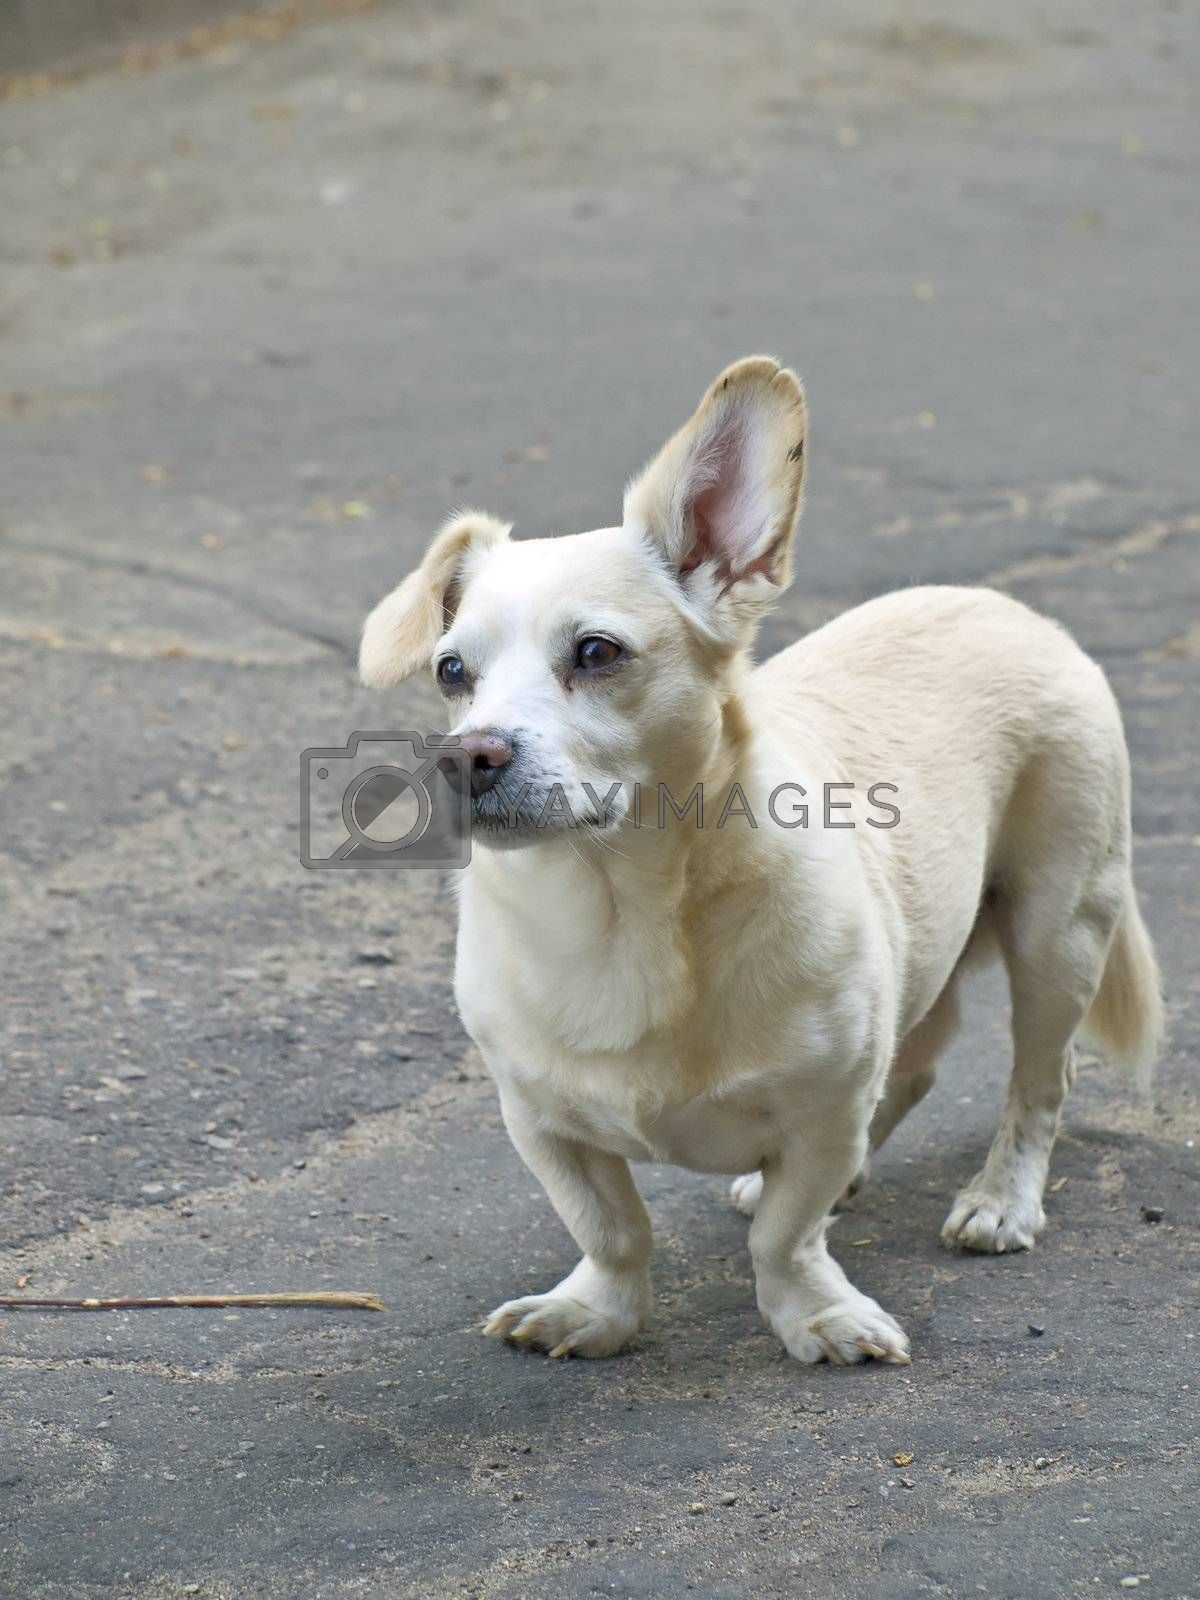 white small surprised dog at the street